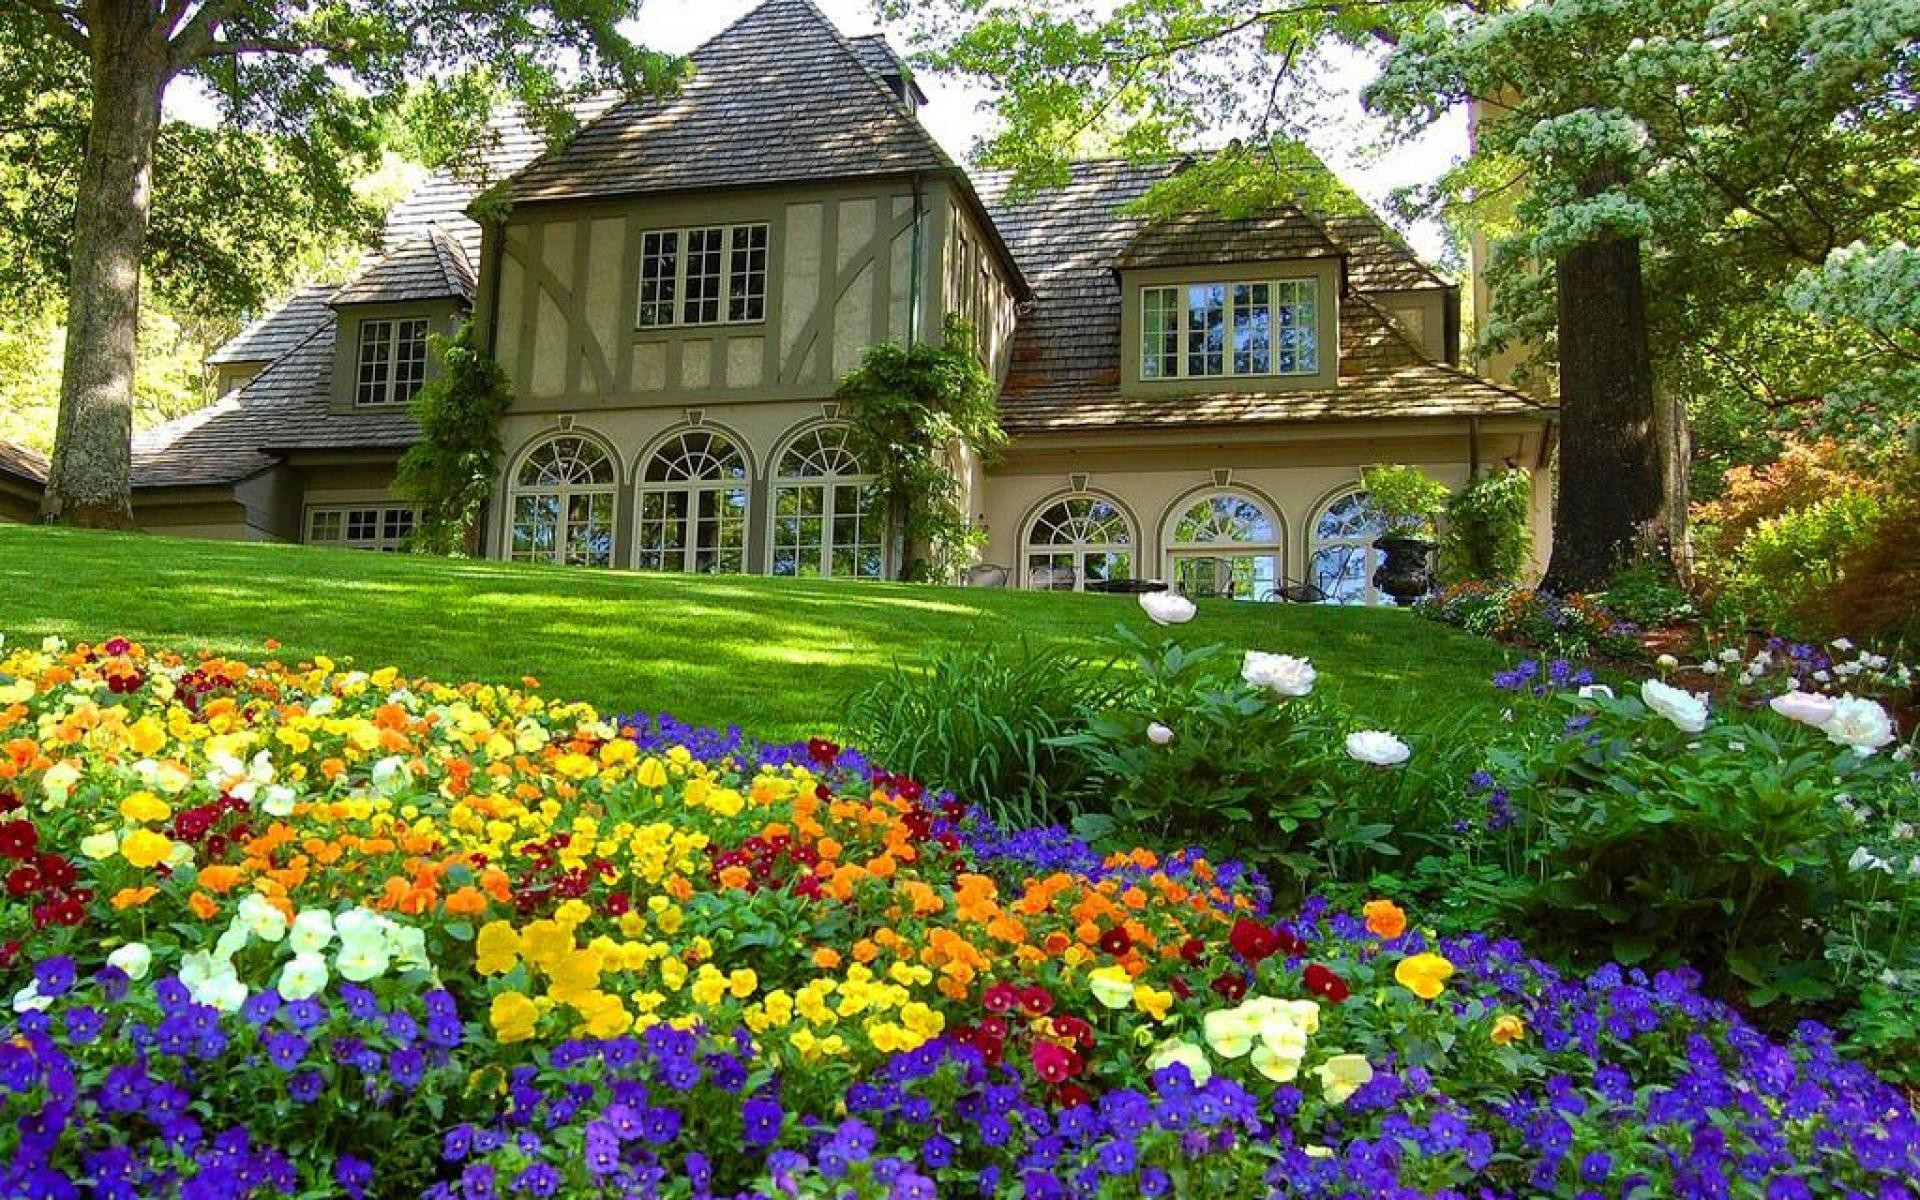 Res: 1920x1200, Country Houses Archives - Simply Wallpaper - Just choose and download